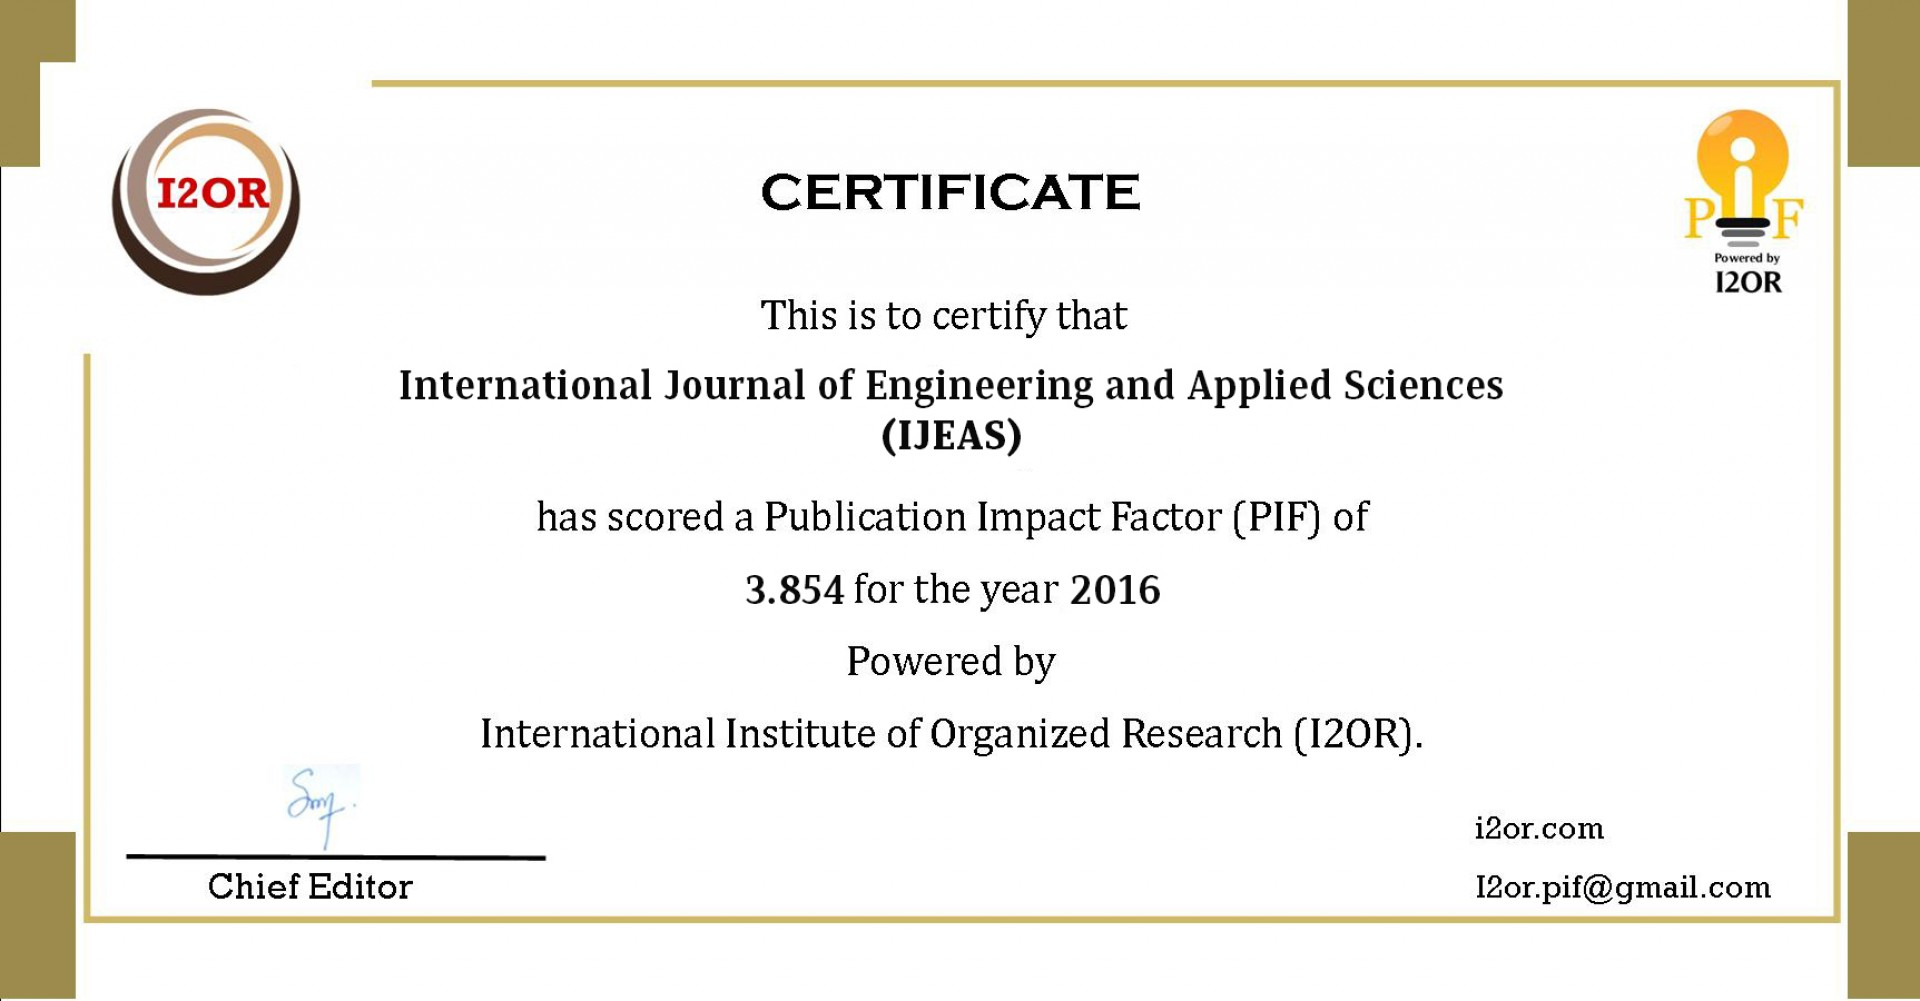 022 Research Paper Ijeas20pif Best Journals To Publish Stunning Papers In Computer Science List Of 1920